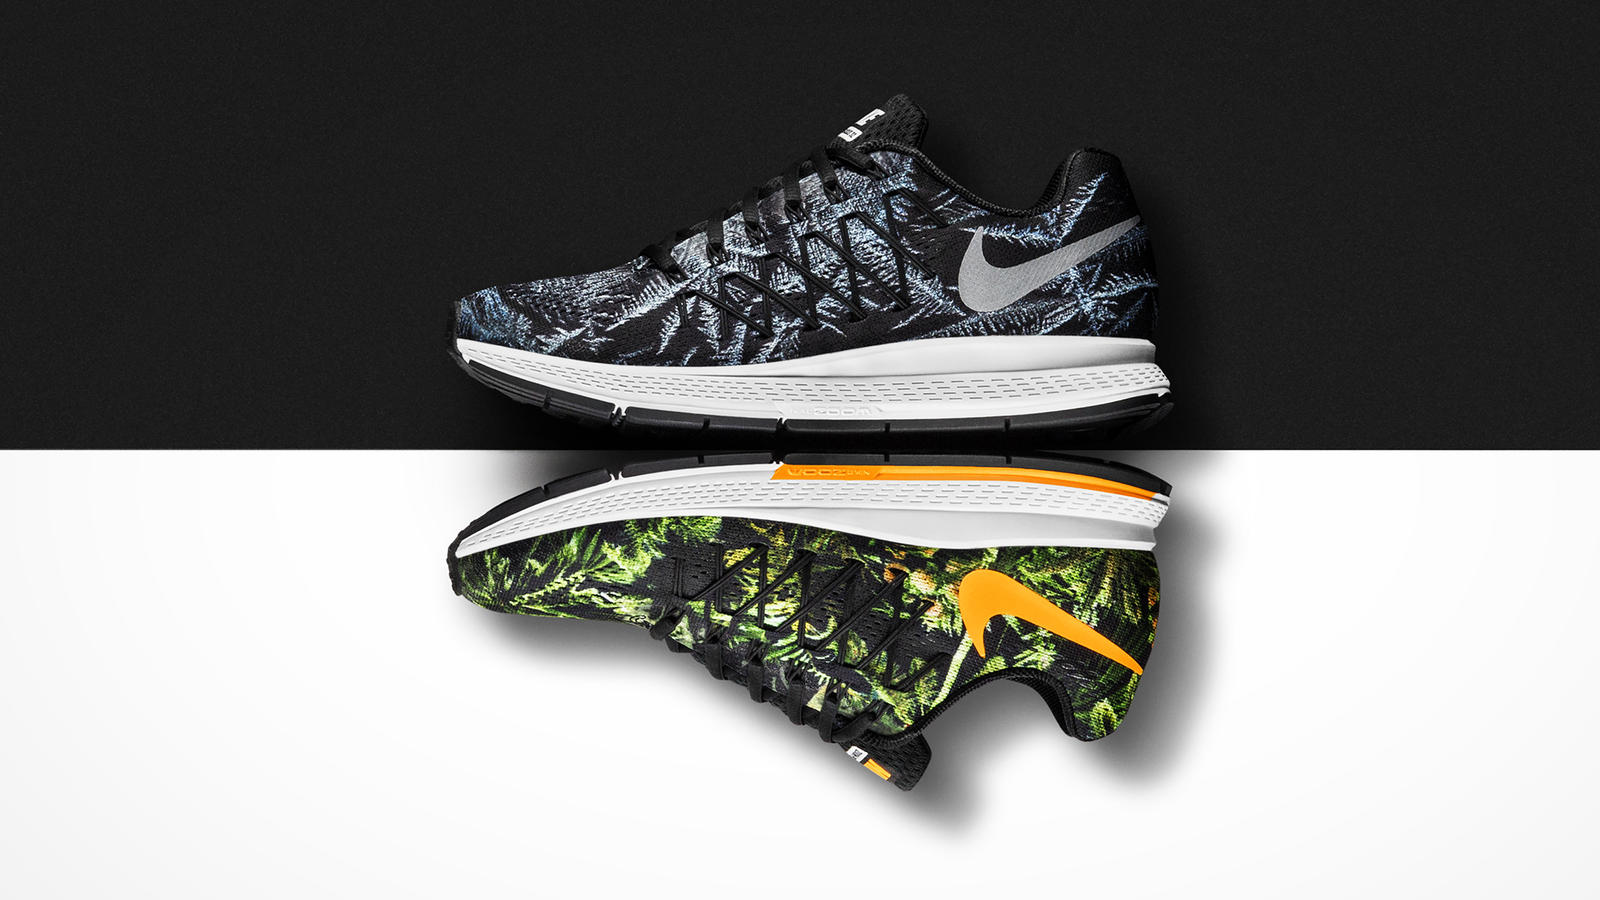 best website 36f7e a1f3b The Nike Solstice Pack will be available beginning December 10 on une paire  de nike